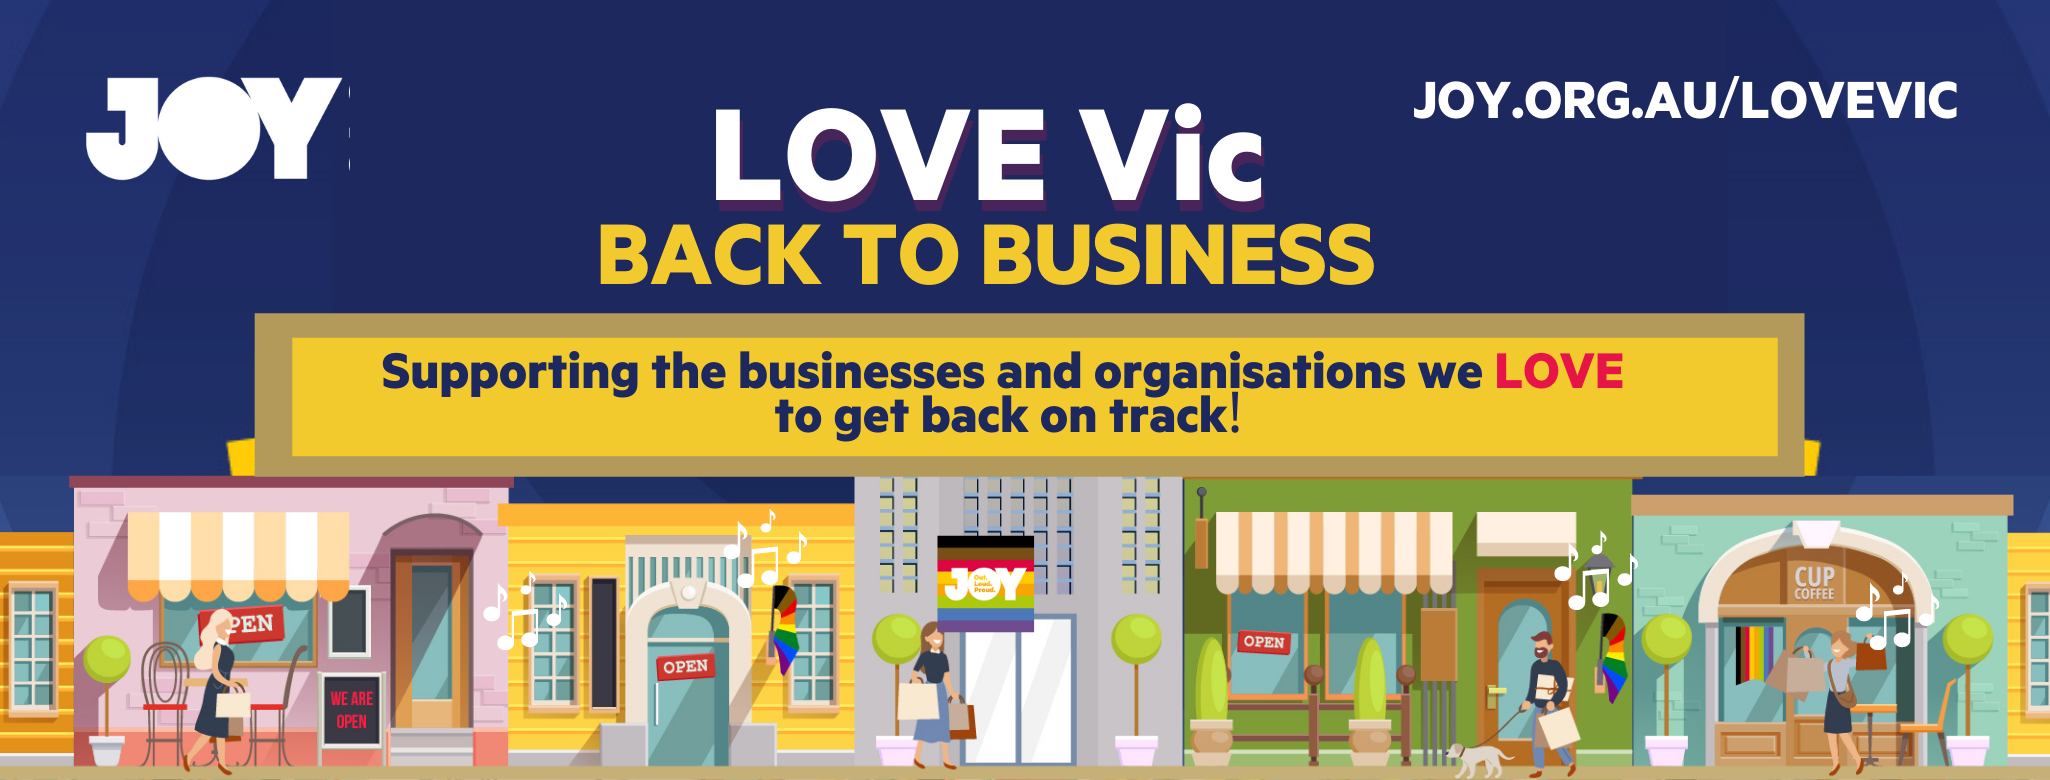 JOY is launching a LOVE Vic Back to Business campaign